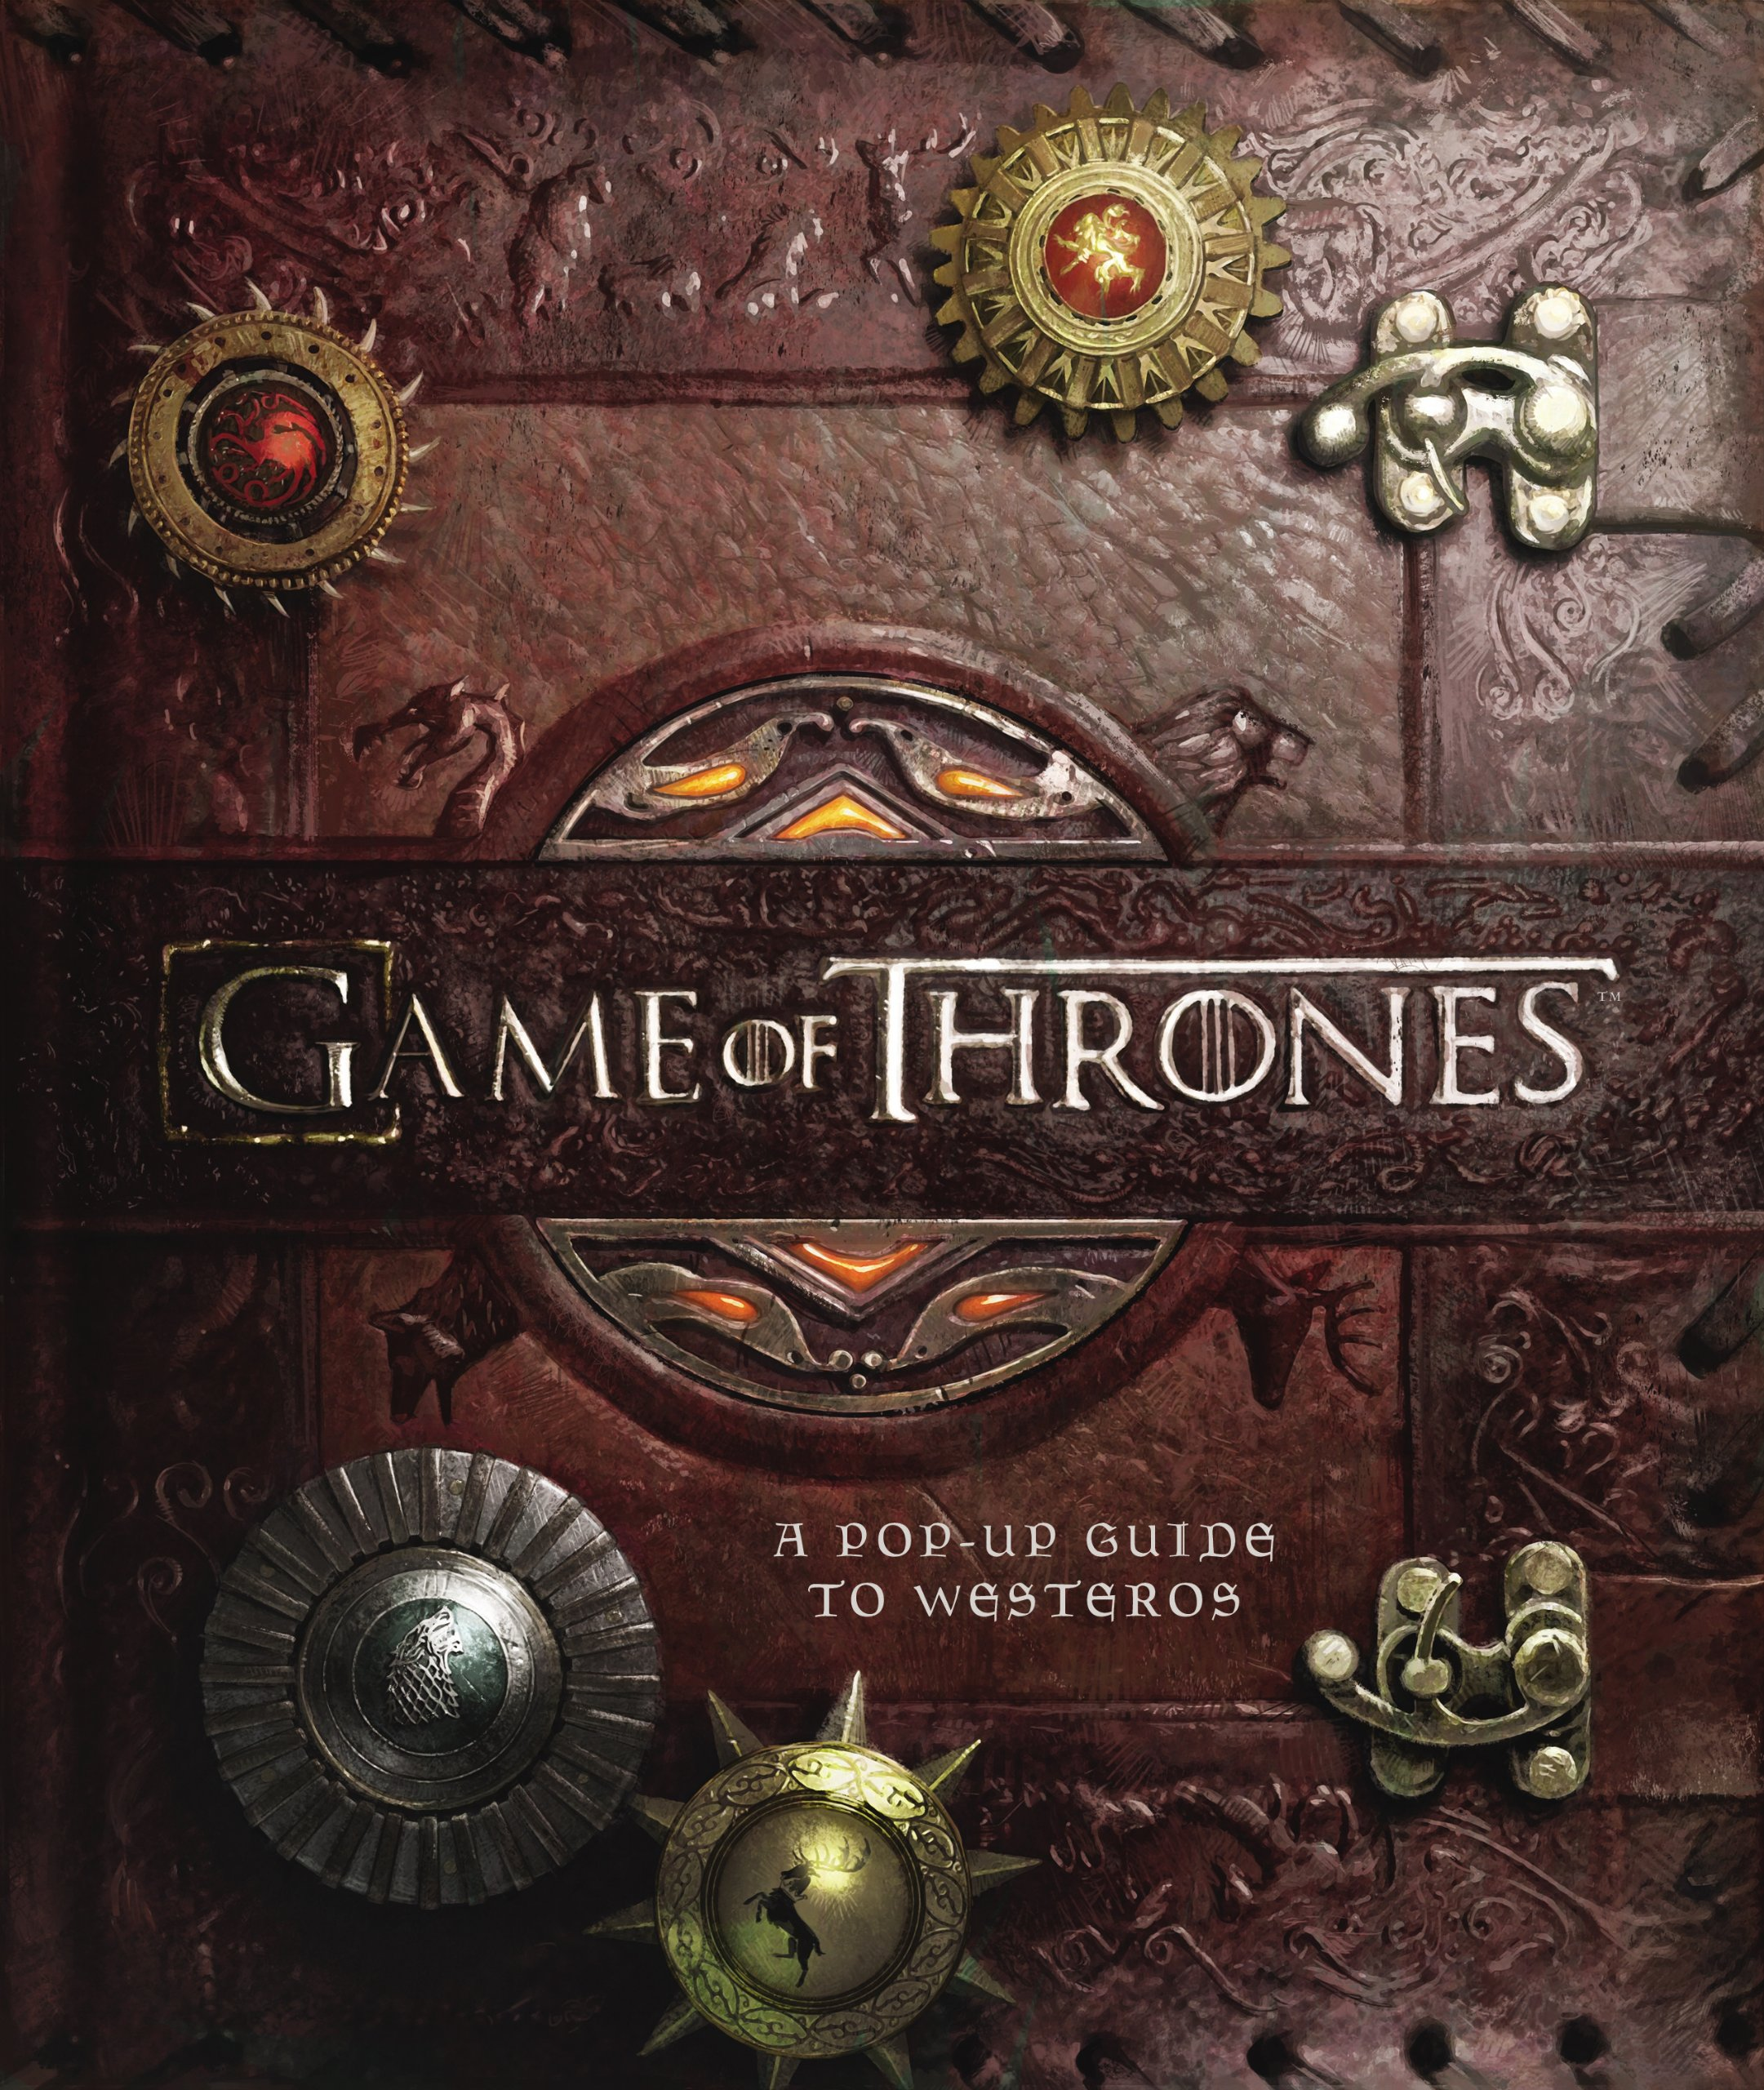 Game of thrones a pop up guide to westeros amazon matthew game of thrones a pop up guide to westeros amazon matthew reinhart 9780593073452 books gumiabroncs Image collections